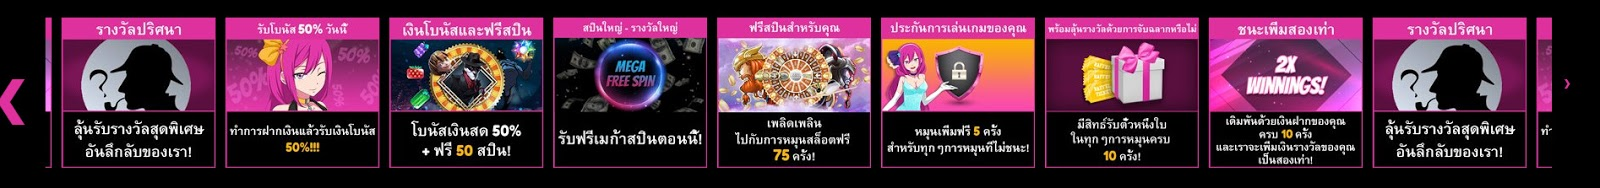 casinointhailand